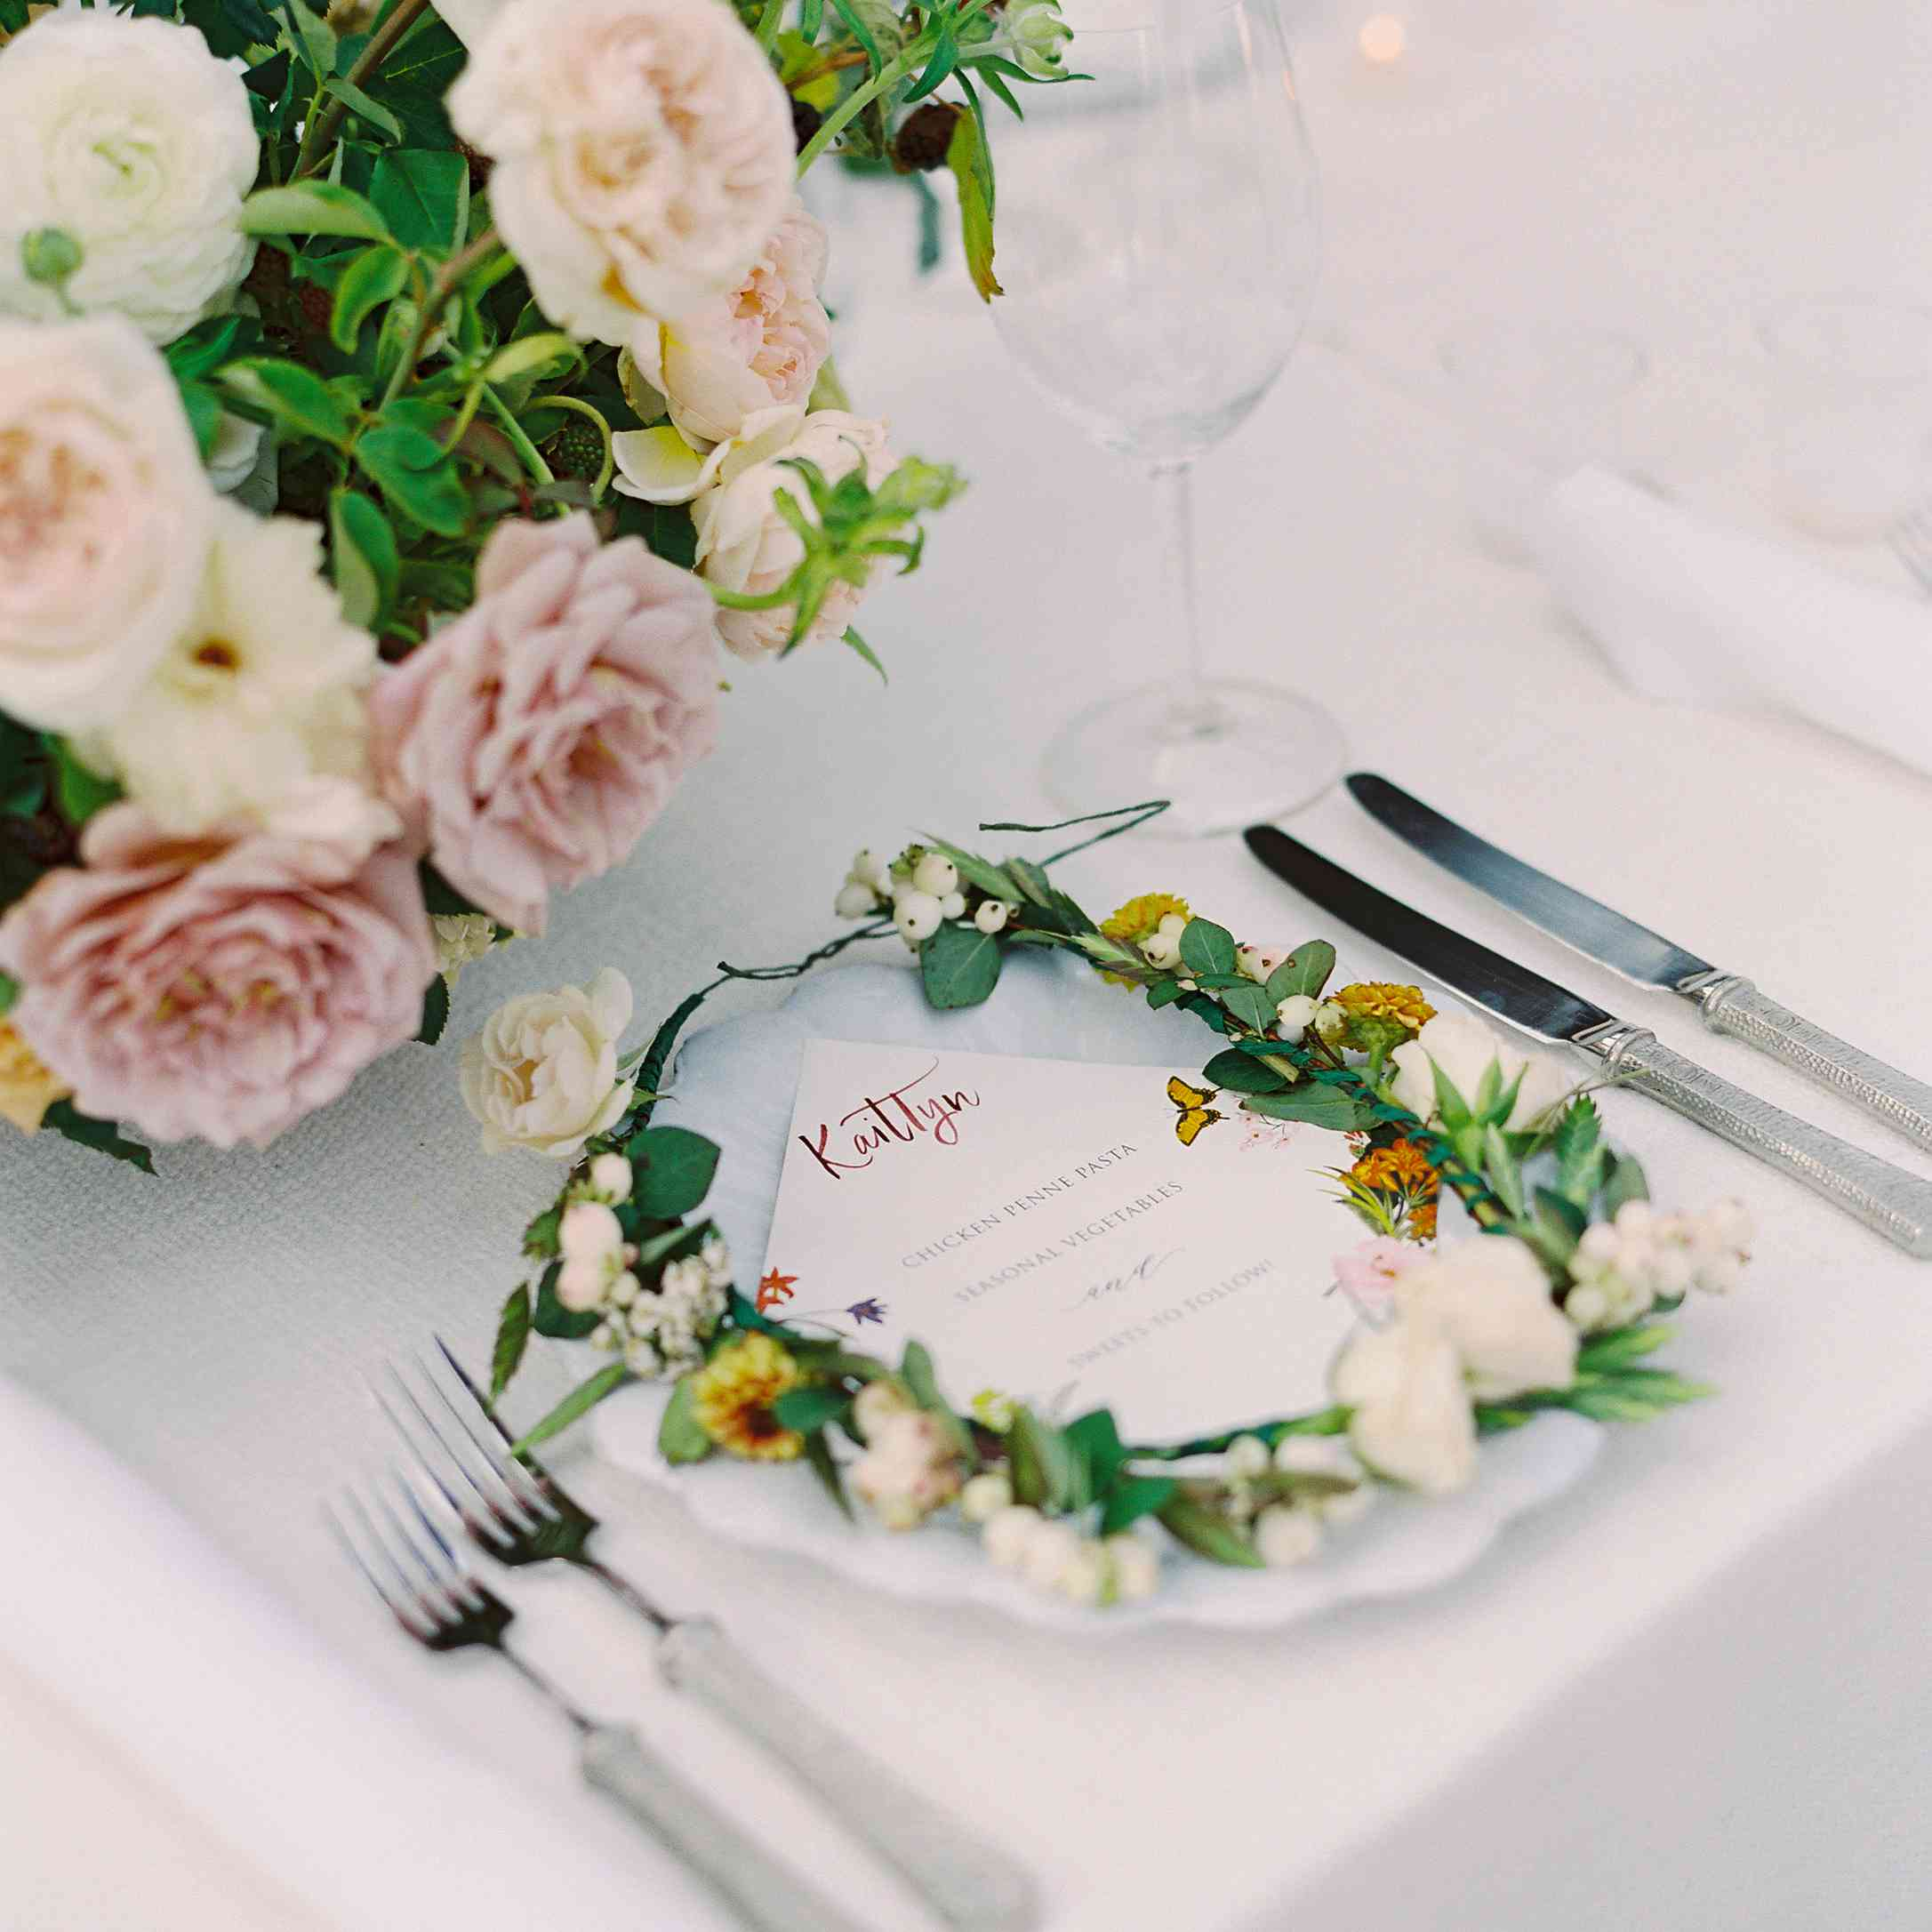 Flower Crown on Place Setting